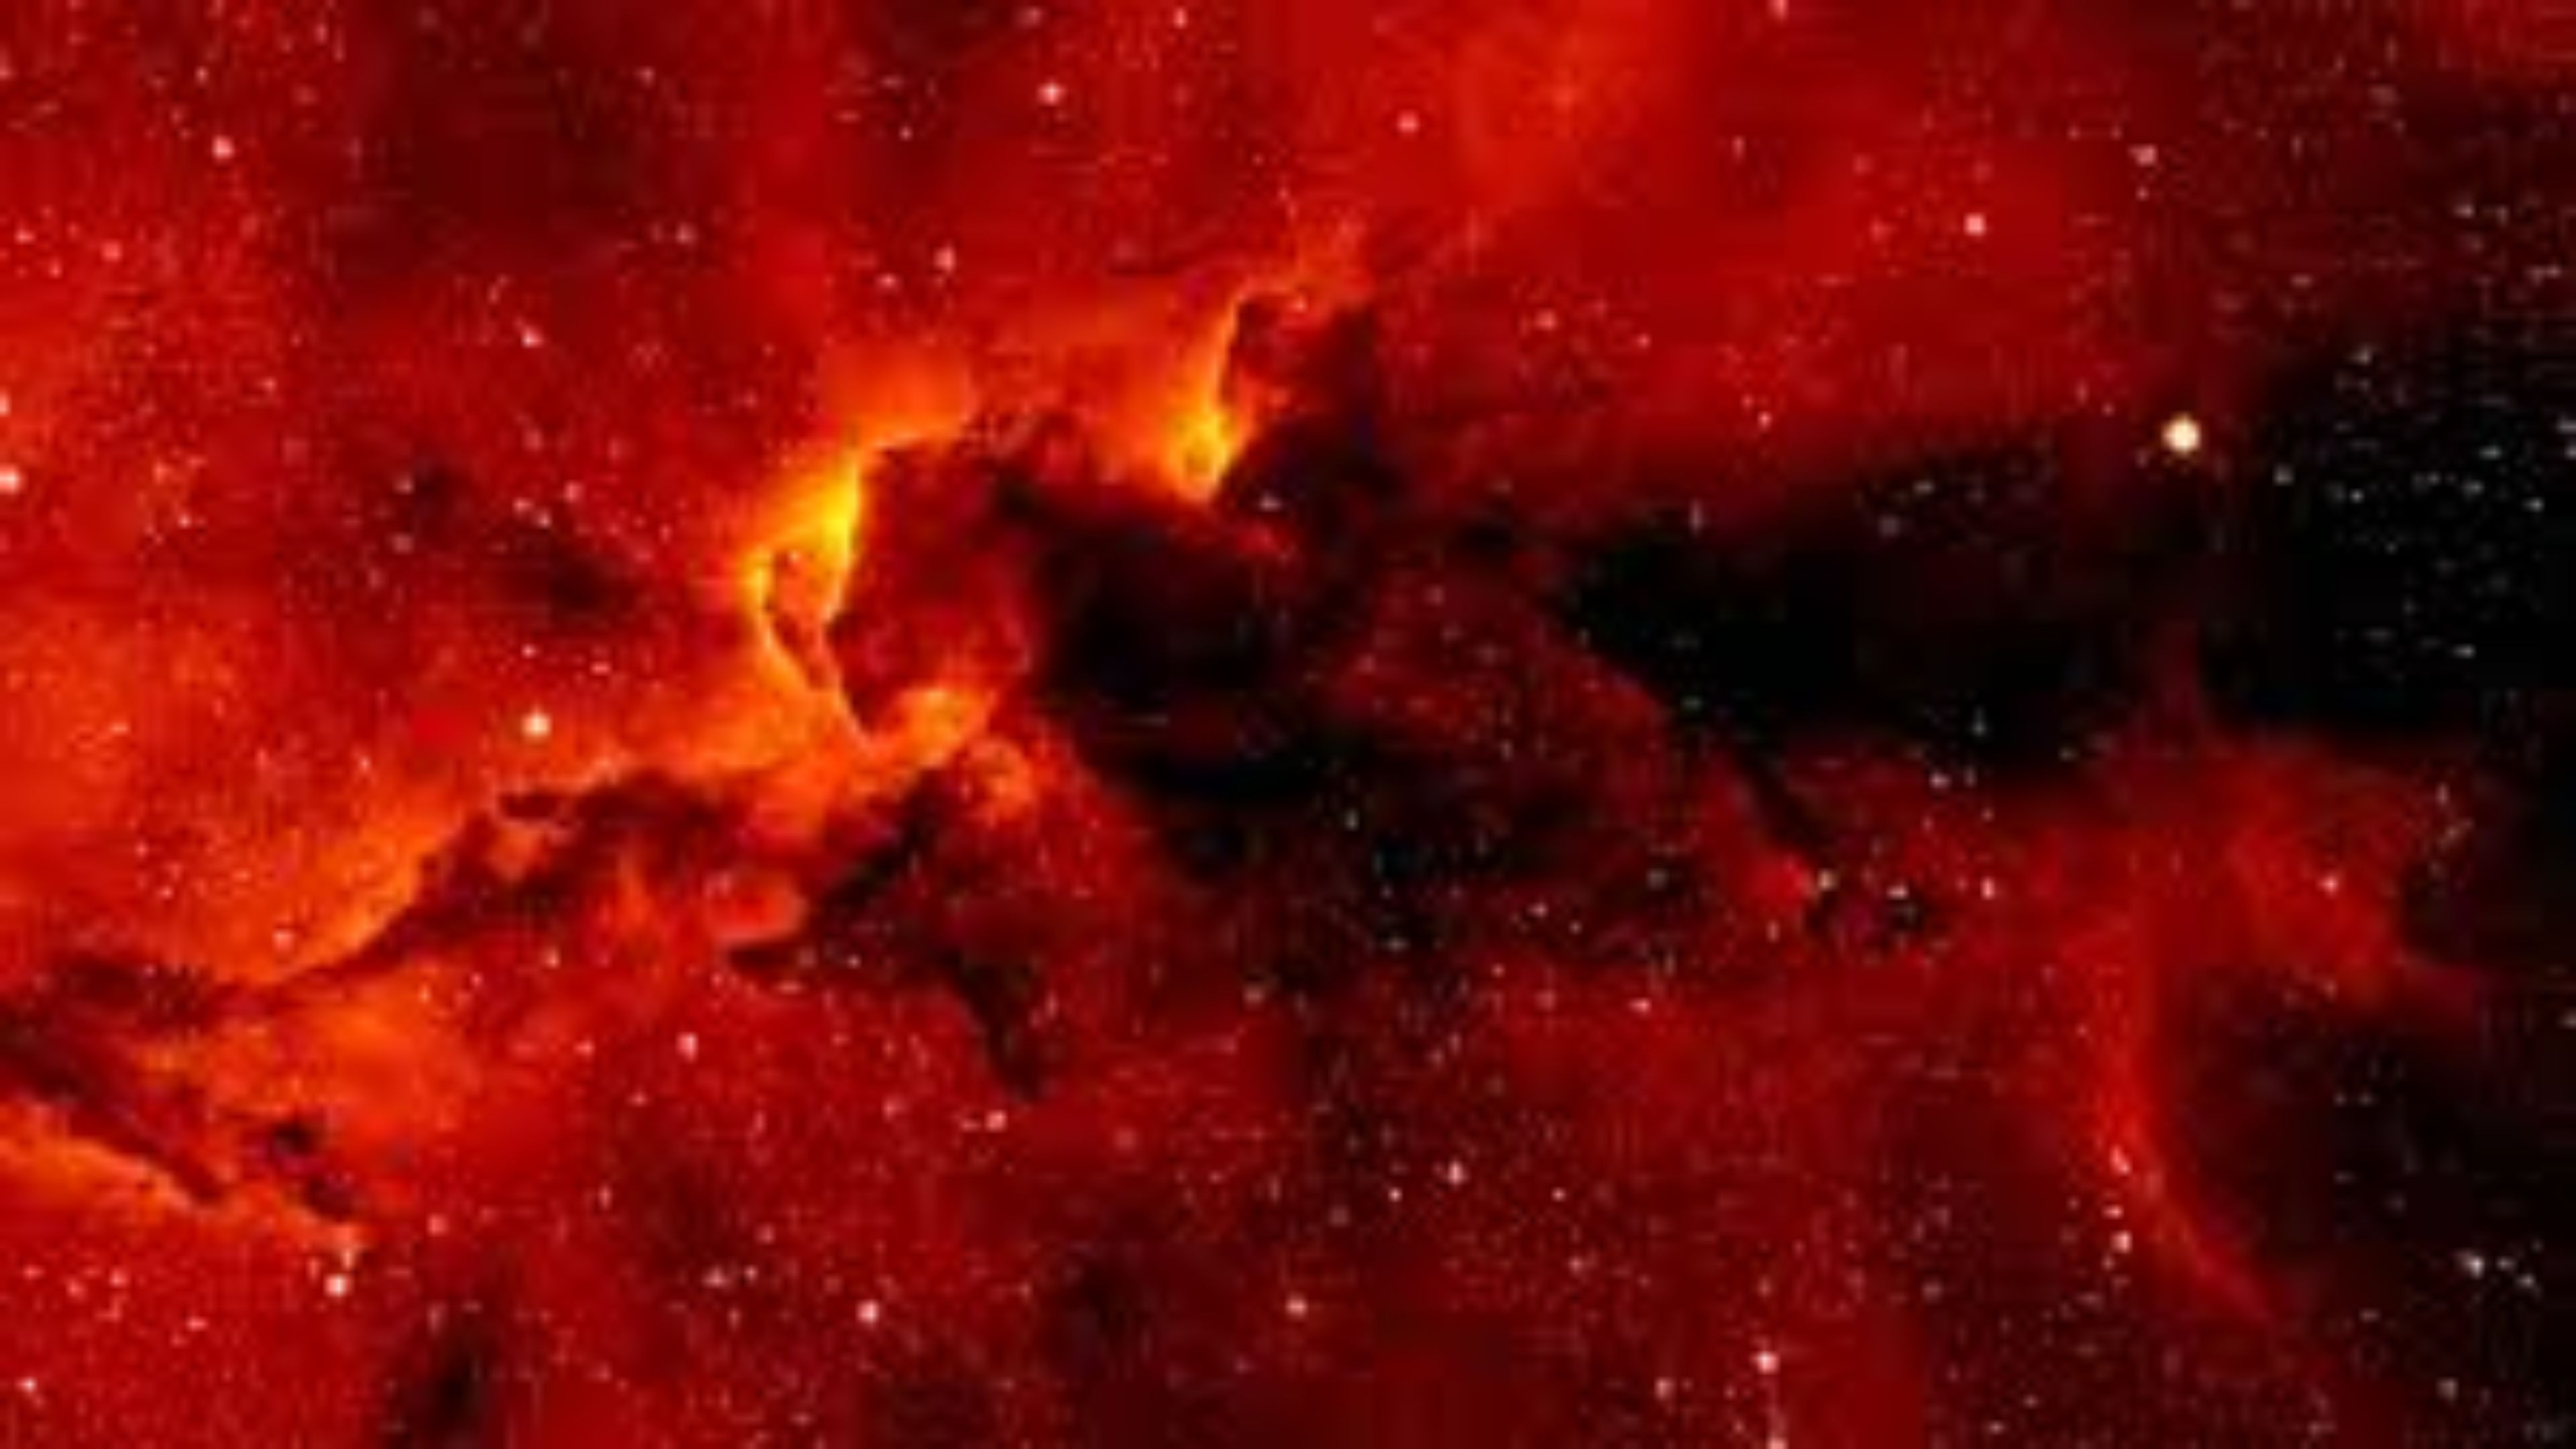 space wallpaper 4k,nebula,red,geological phenomenon,astronomical object,outer space